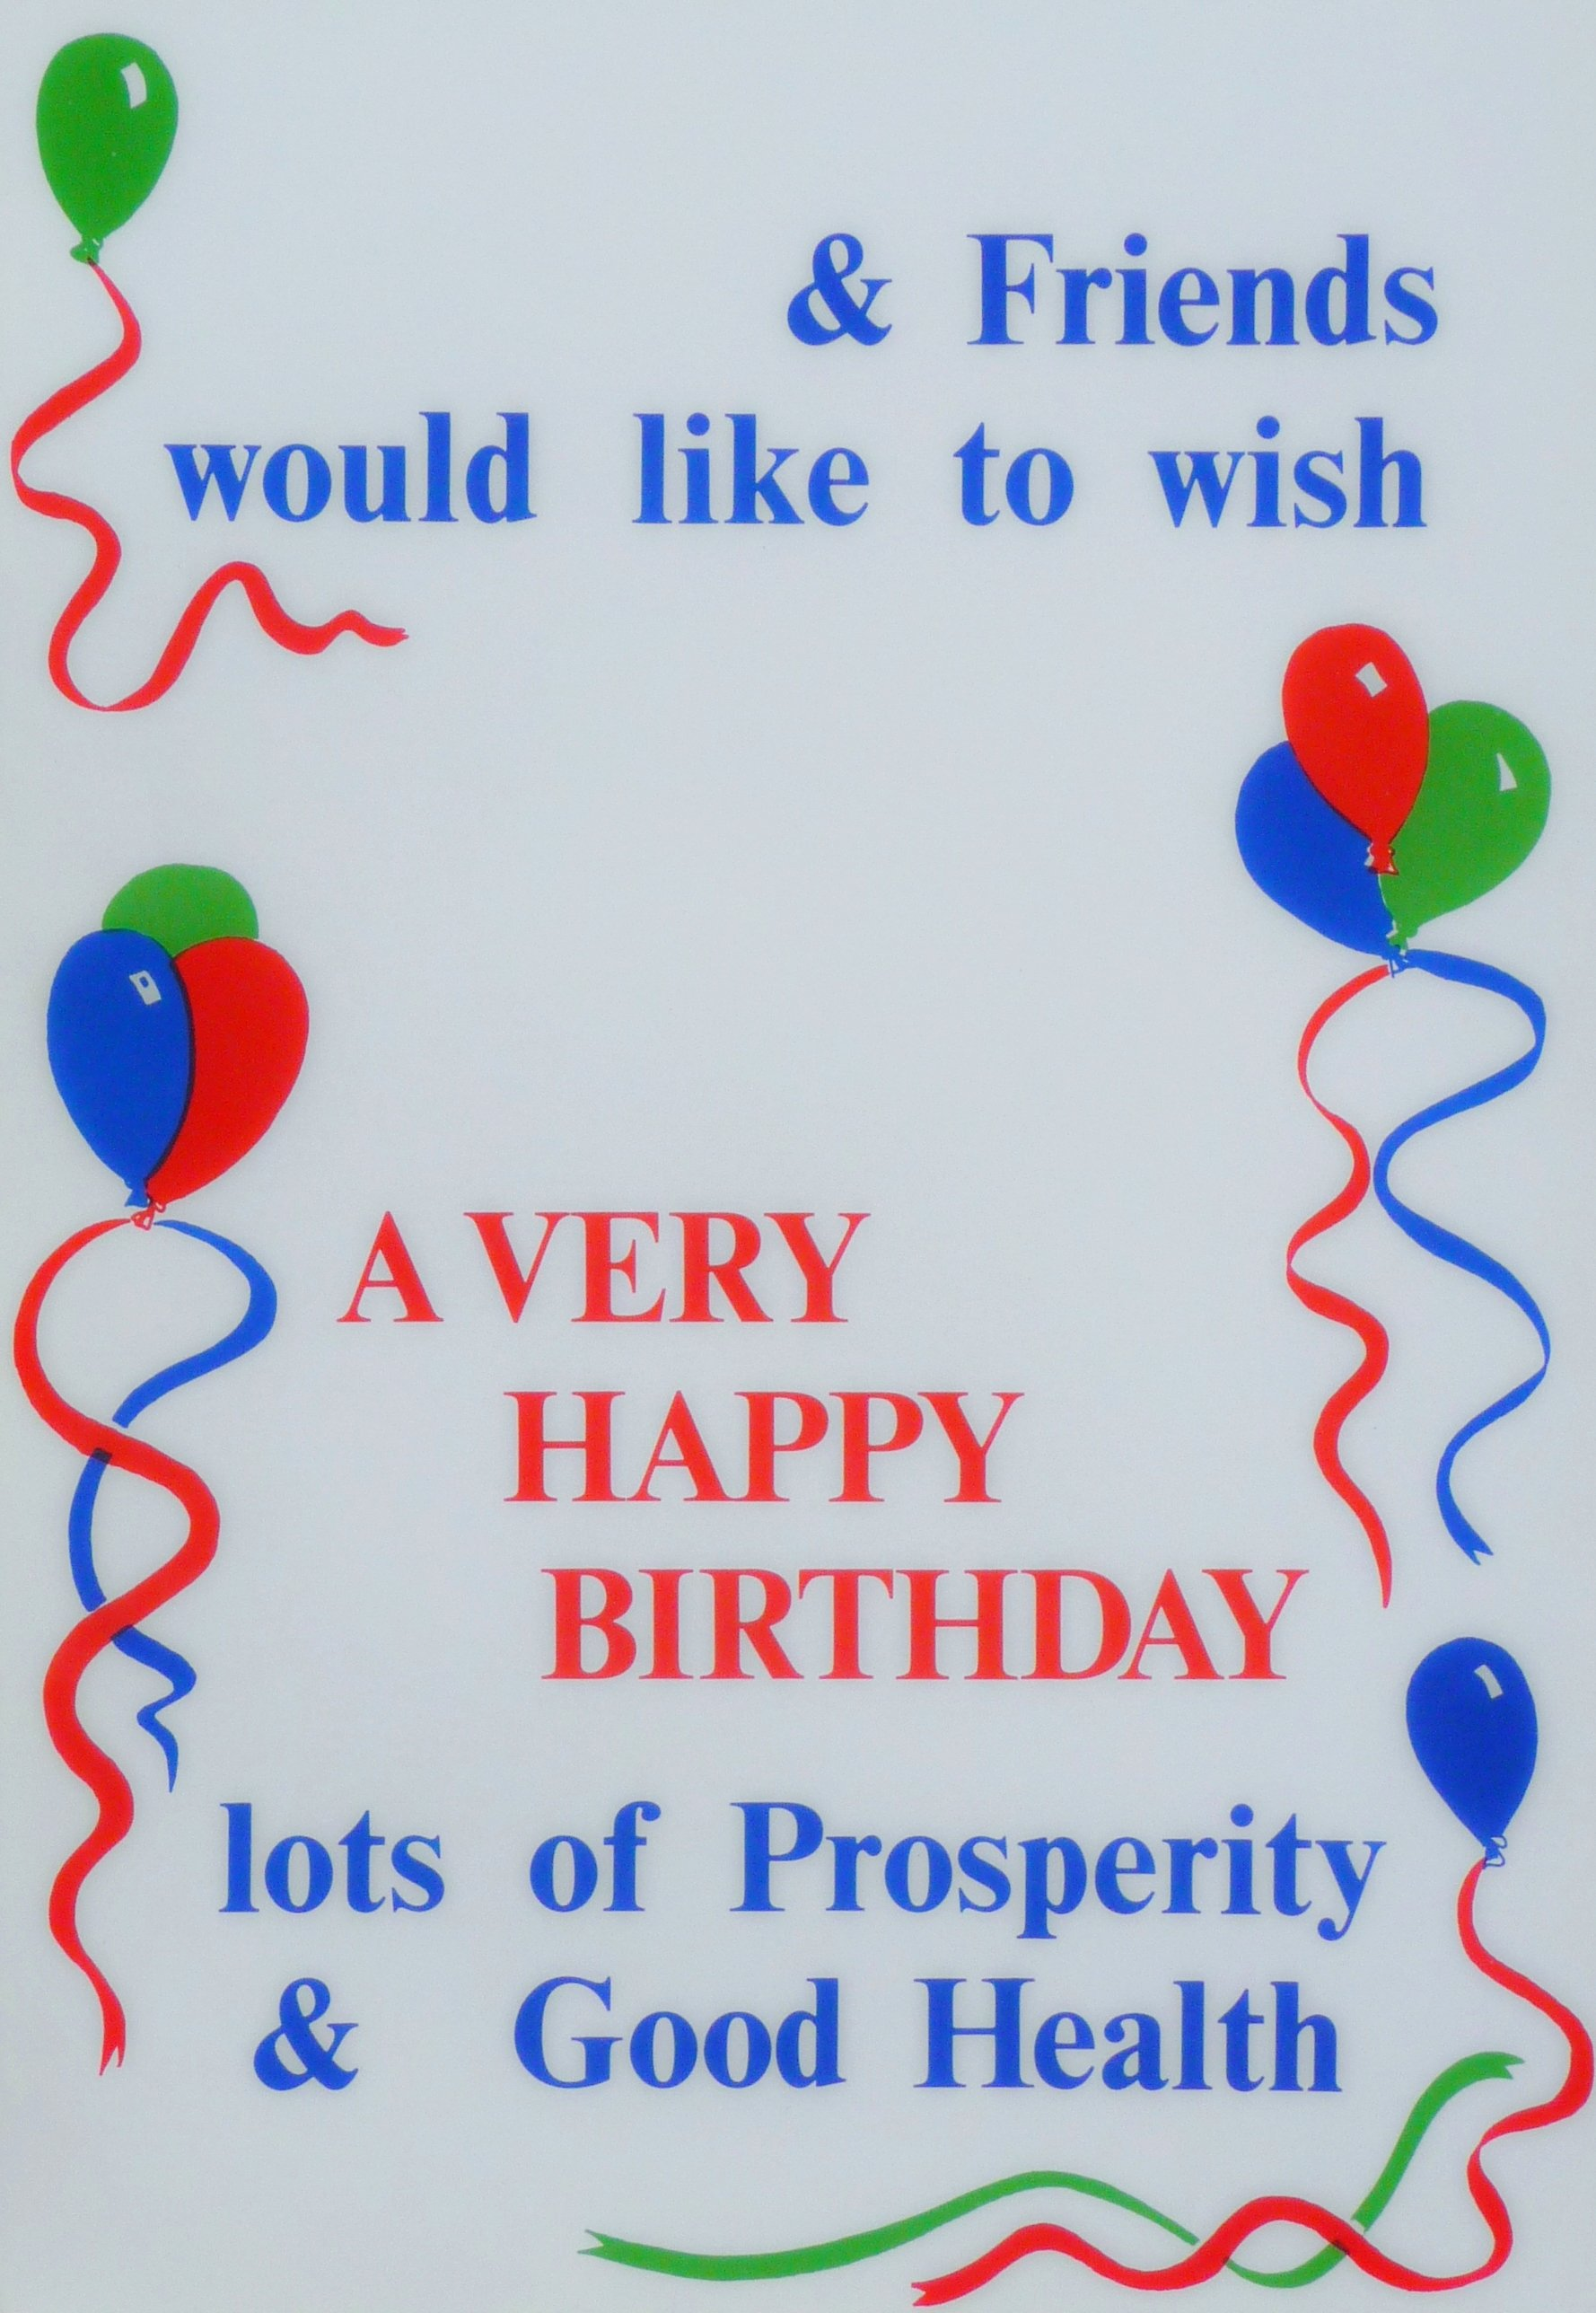 Birthday Posters Free Download Fresh Free Birthday Poster Download Free Clip Art Free Clip